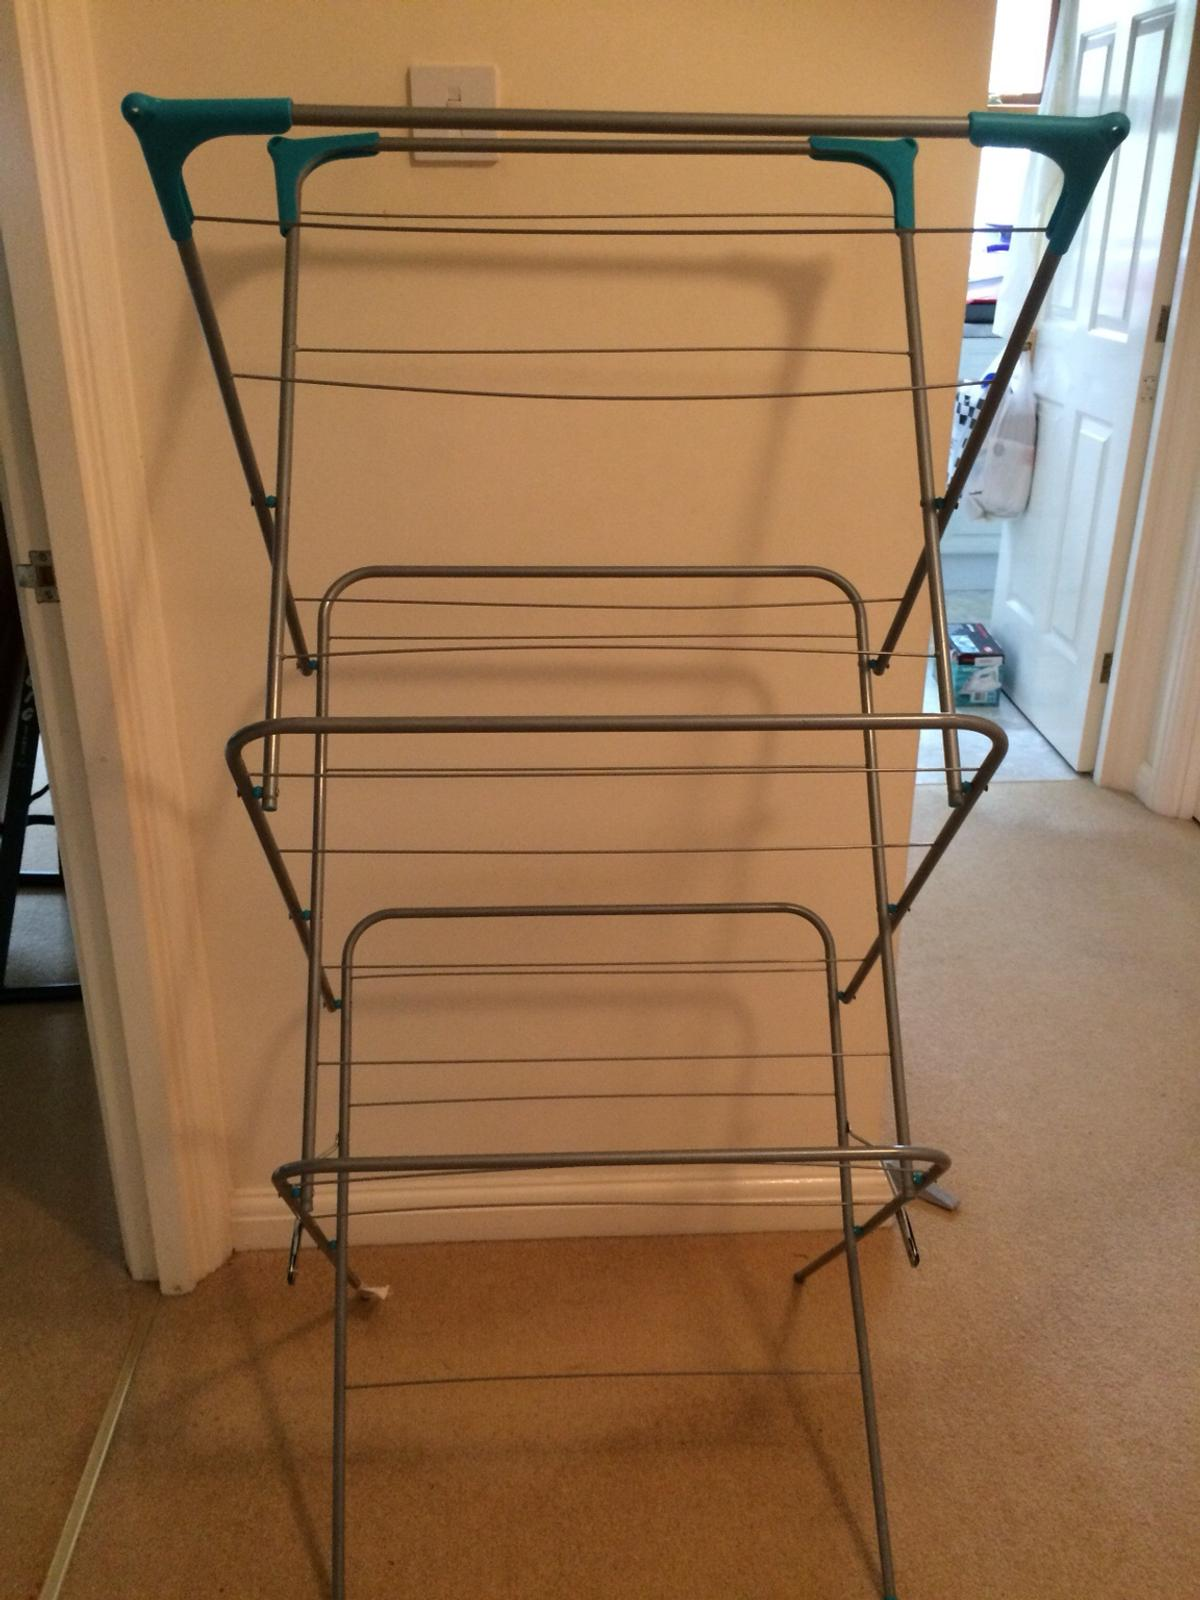 Clothes Airer Clothes Horse In Rh1 Banstead For 5 00 For Sale Shpock